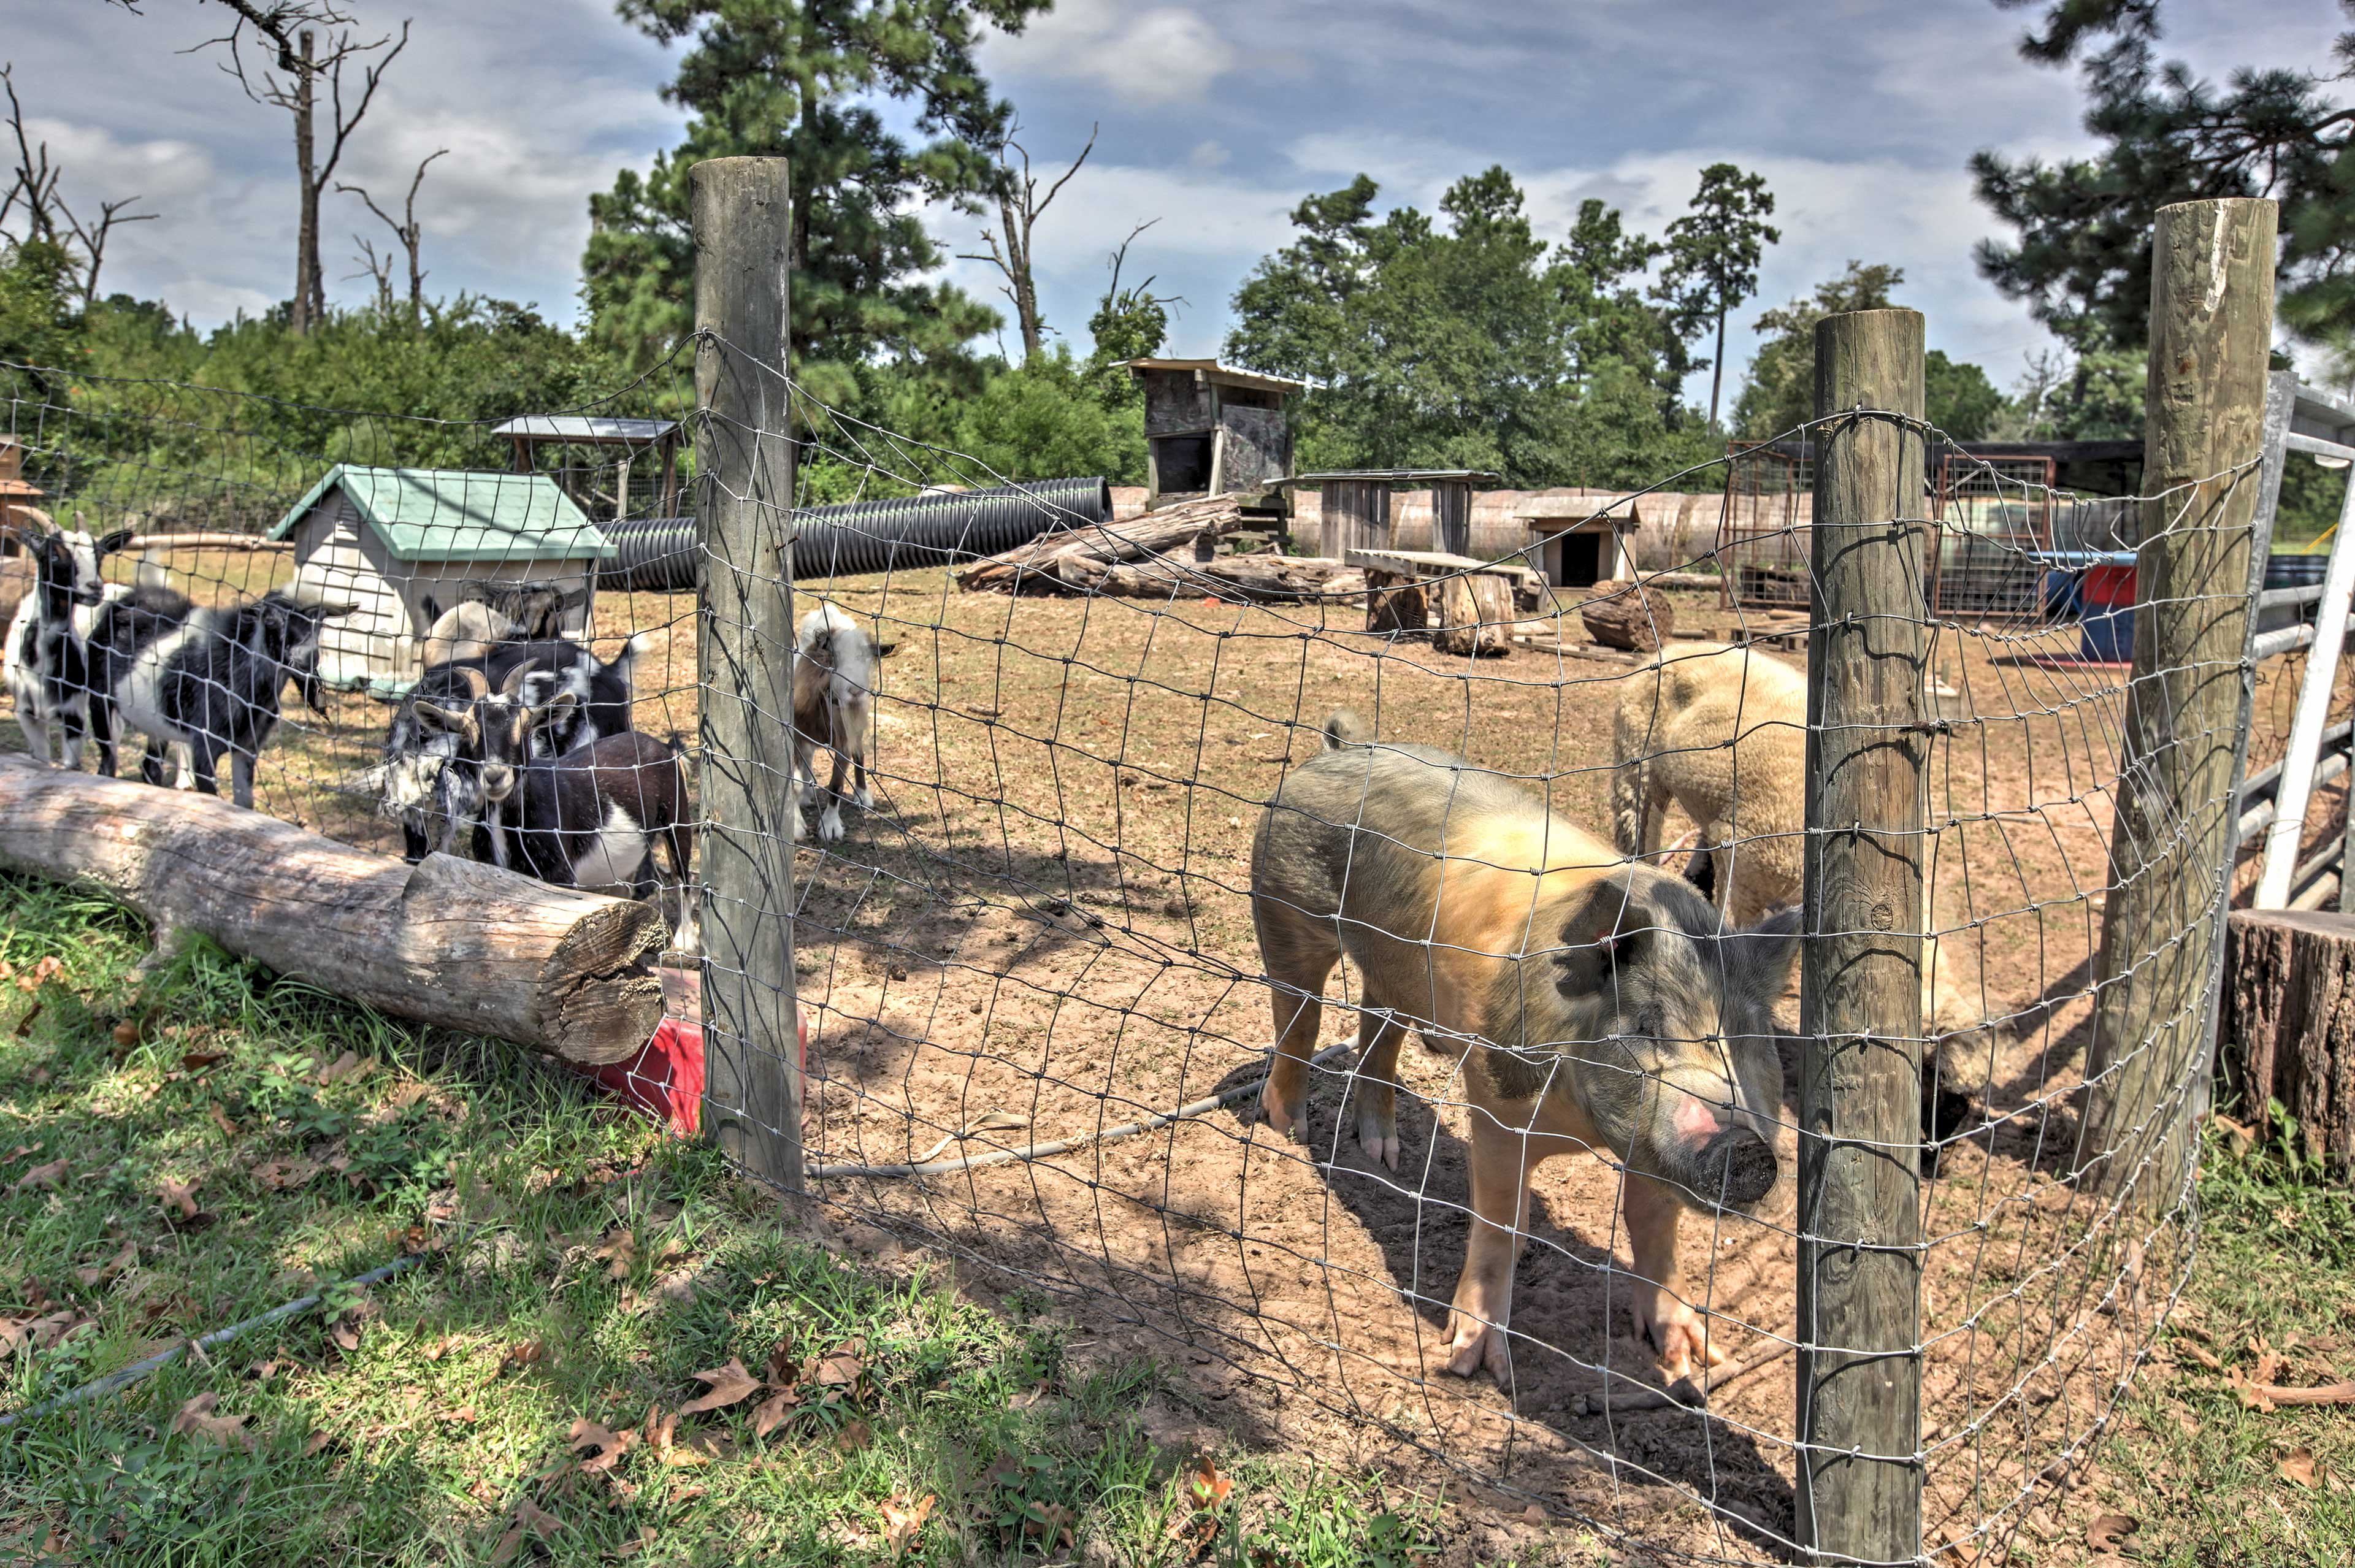 Be sure to spend an afternoon watching the pigs and goats play together.